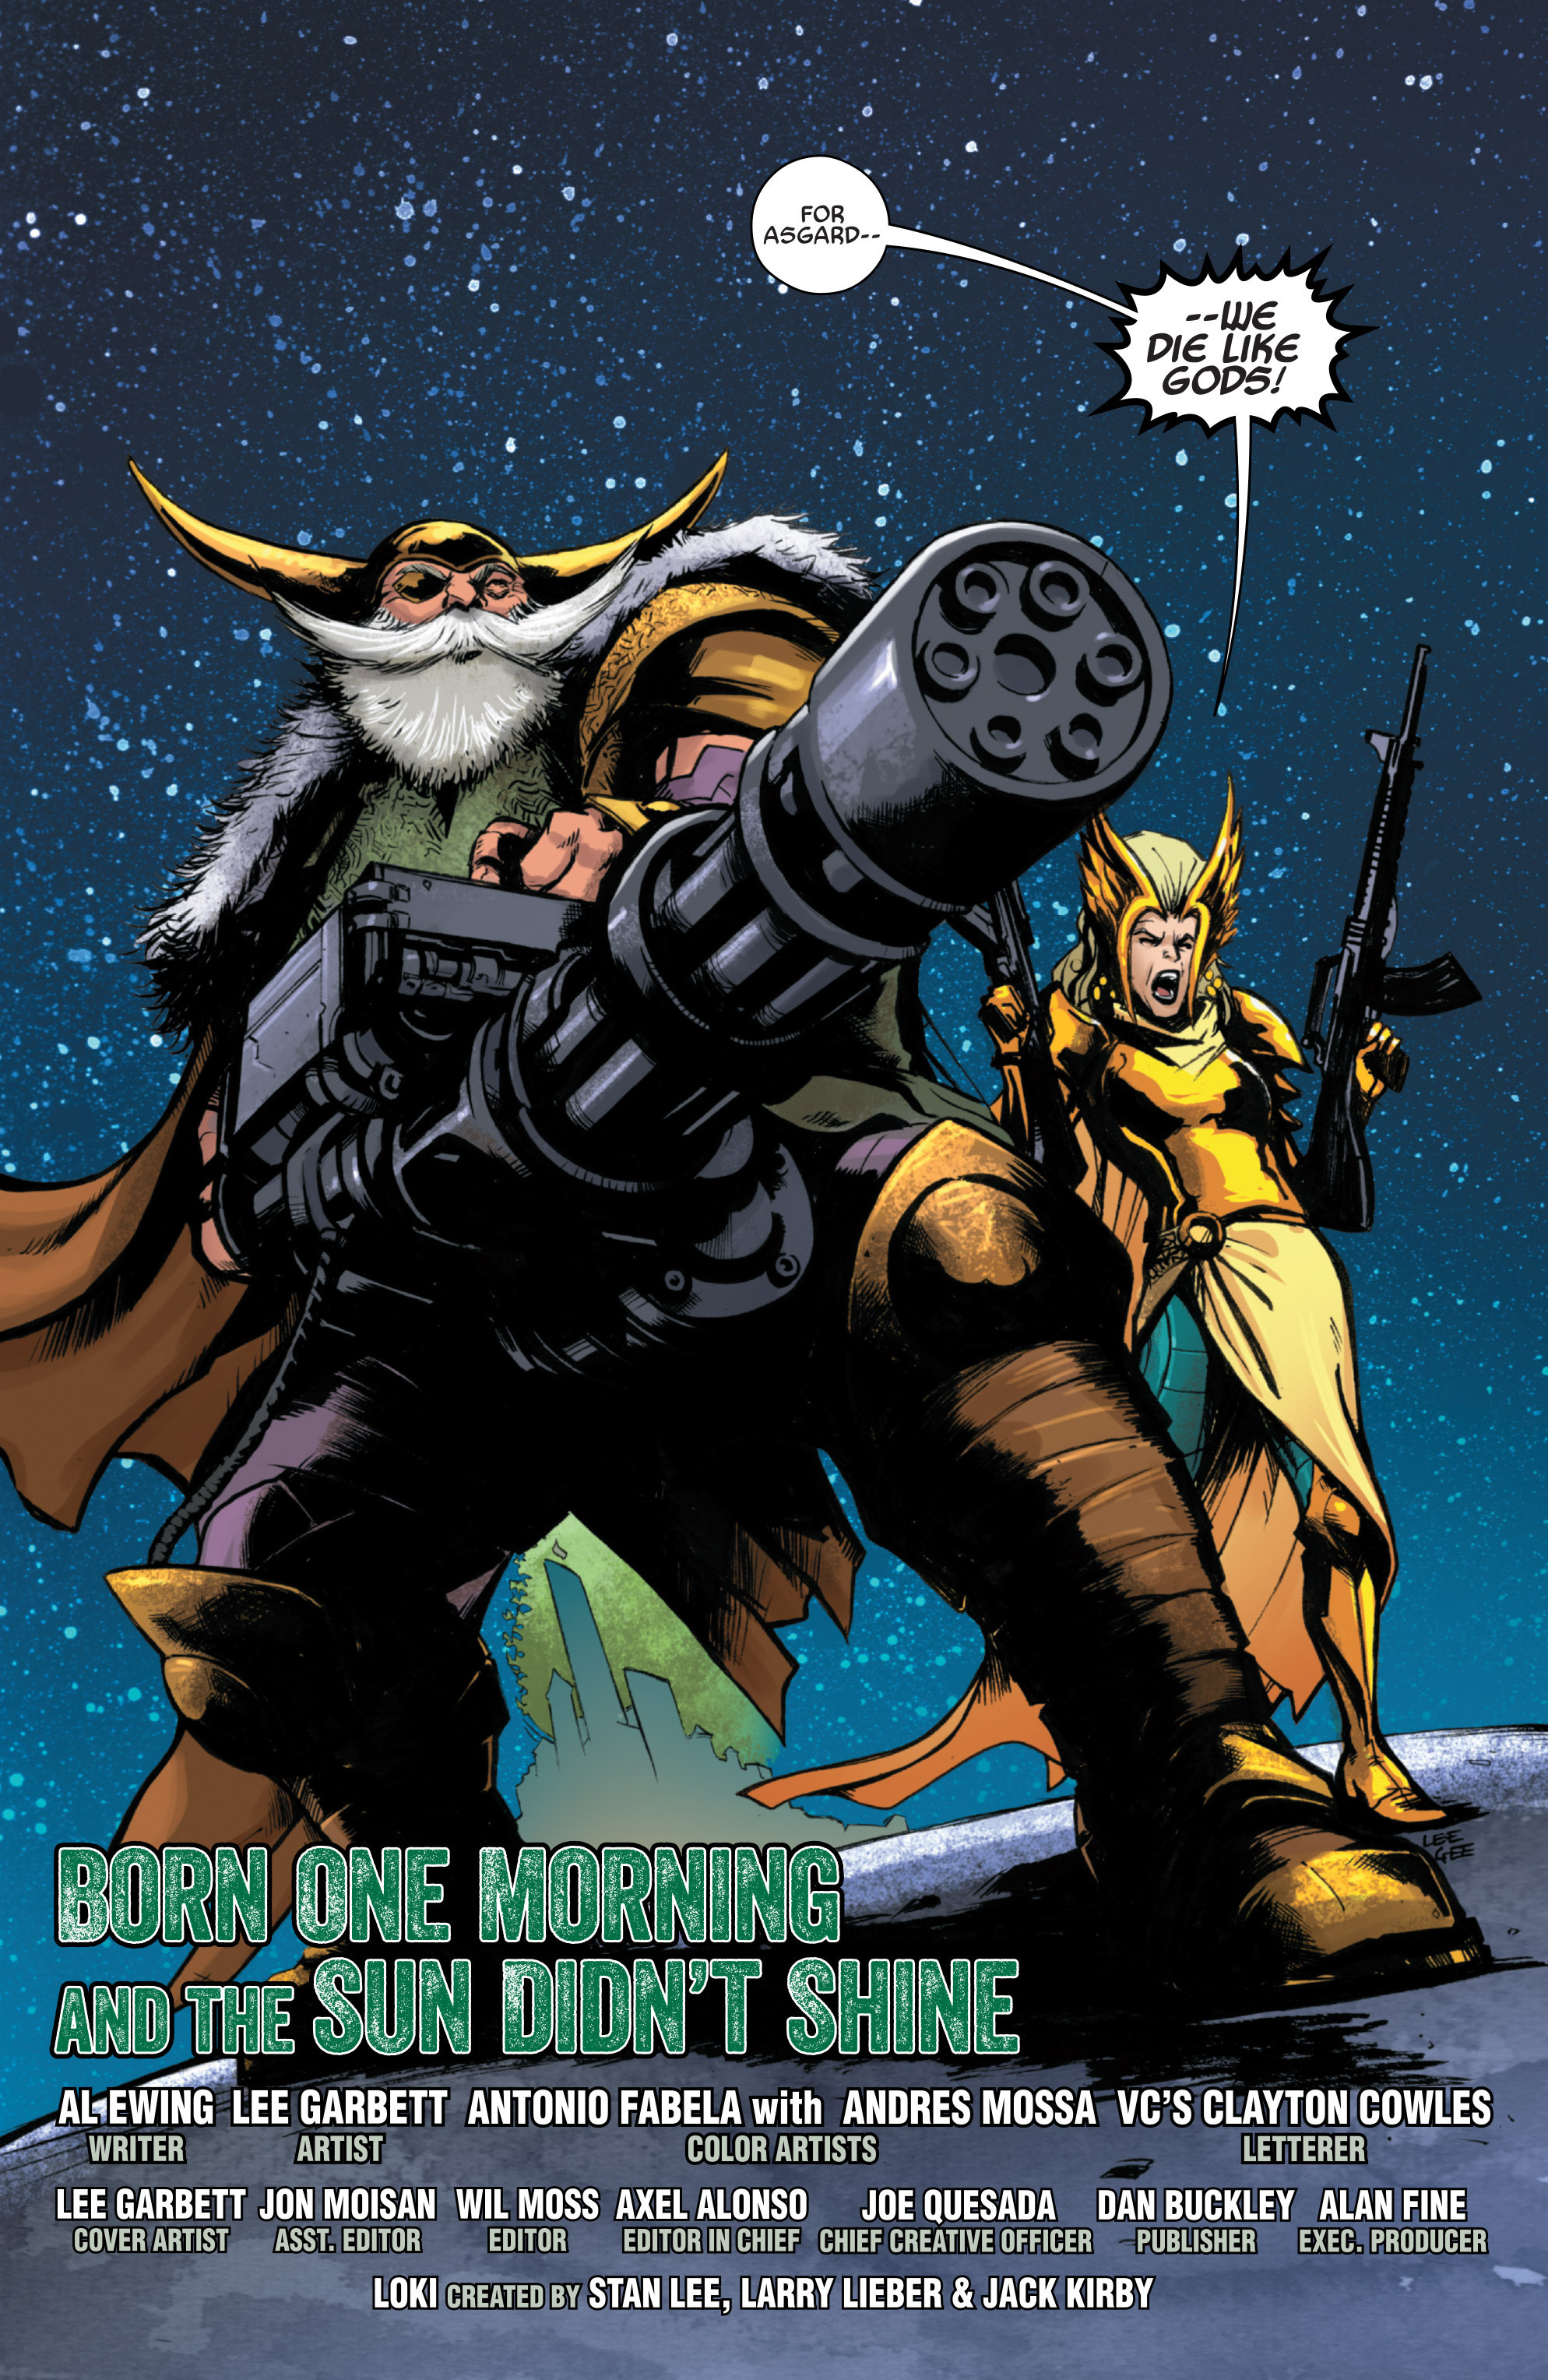 ragnarok the day the gods die The asgardian gods,  but how much of asgard must be killed to qualify as making good on the ragnarok title or will thor save the day before hela can actually.